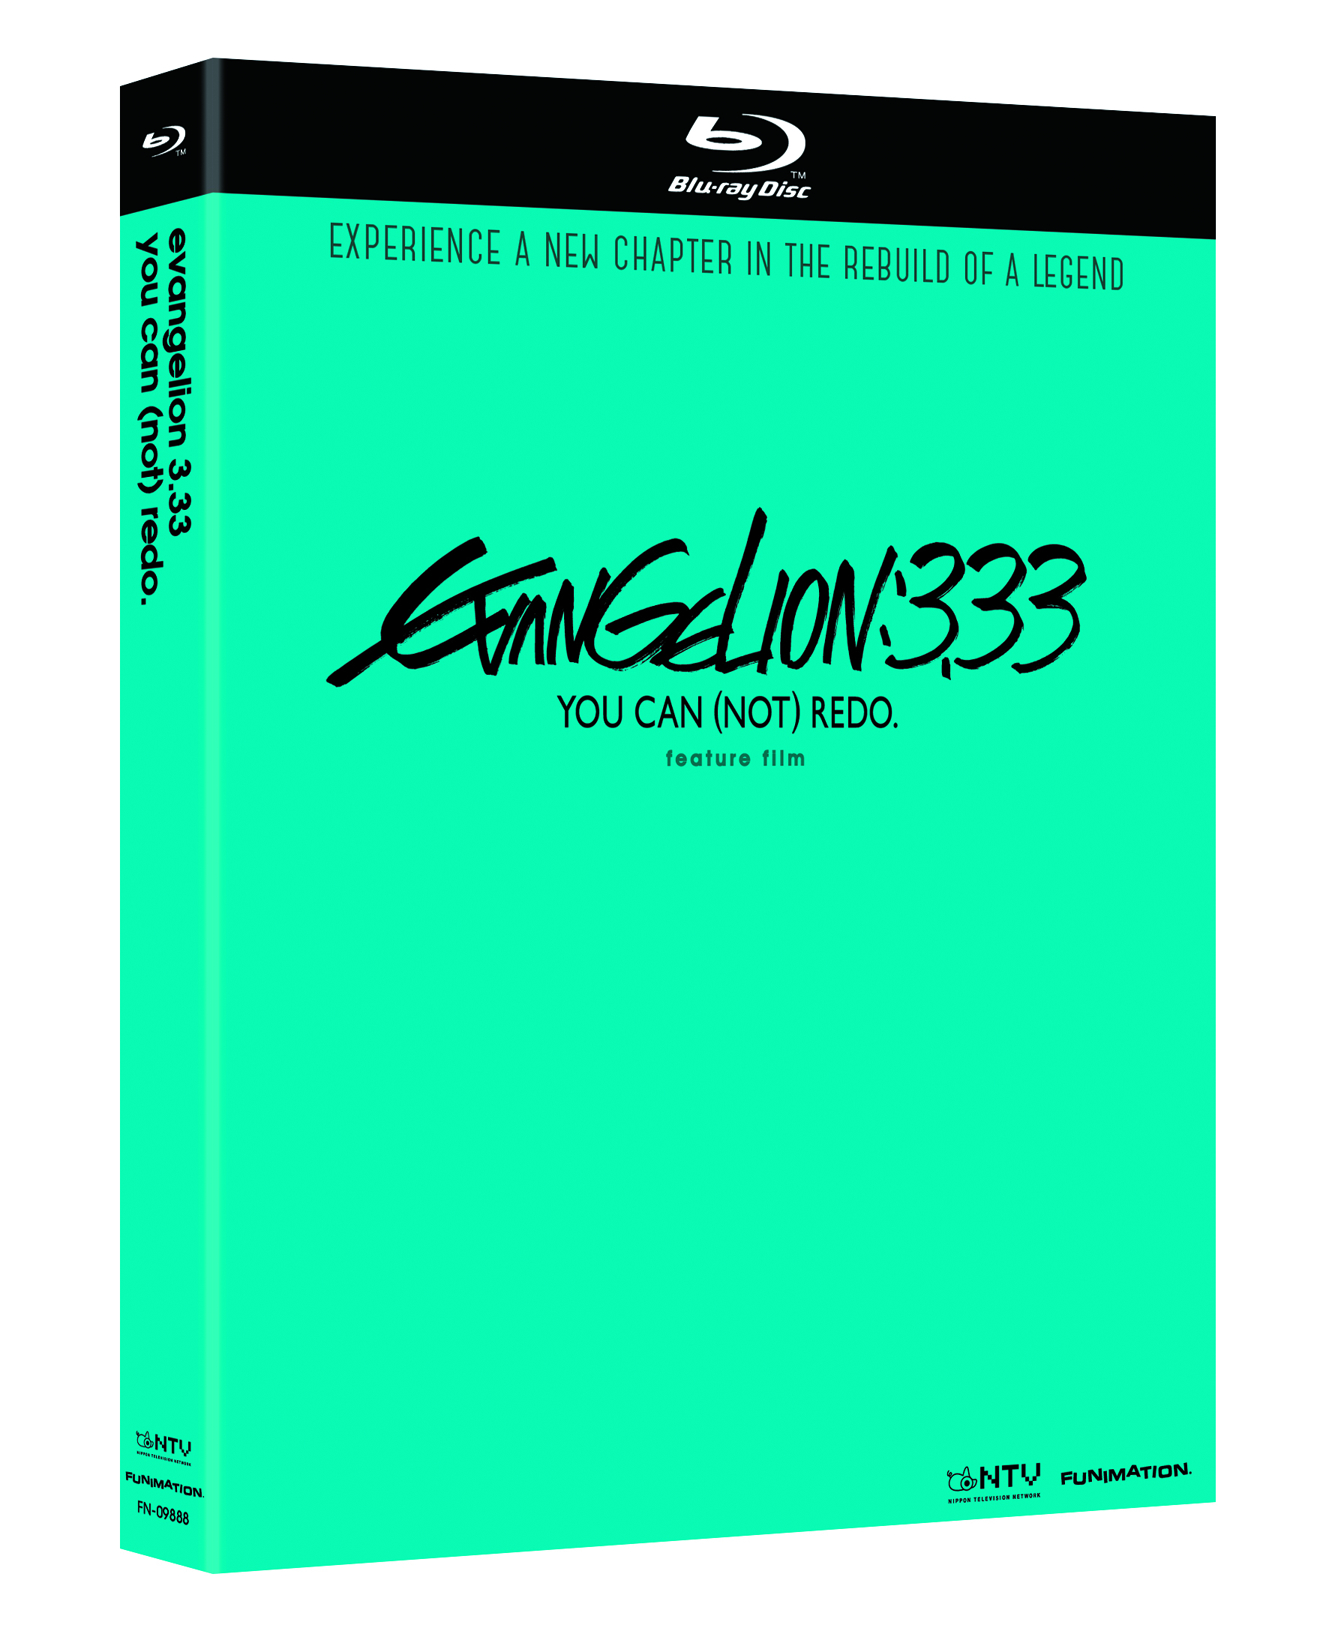 EVANGELION 3.33 YOU CAN NOT REDO BD